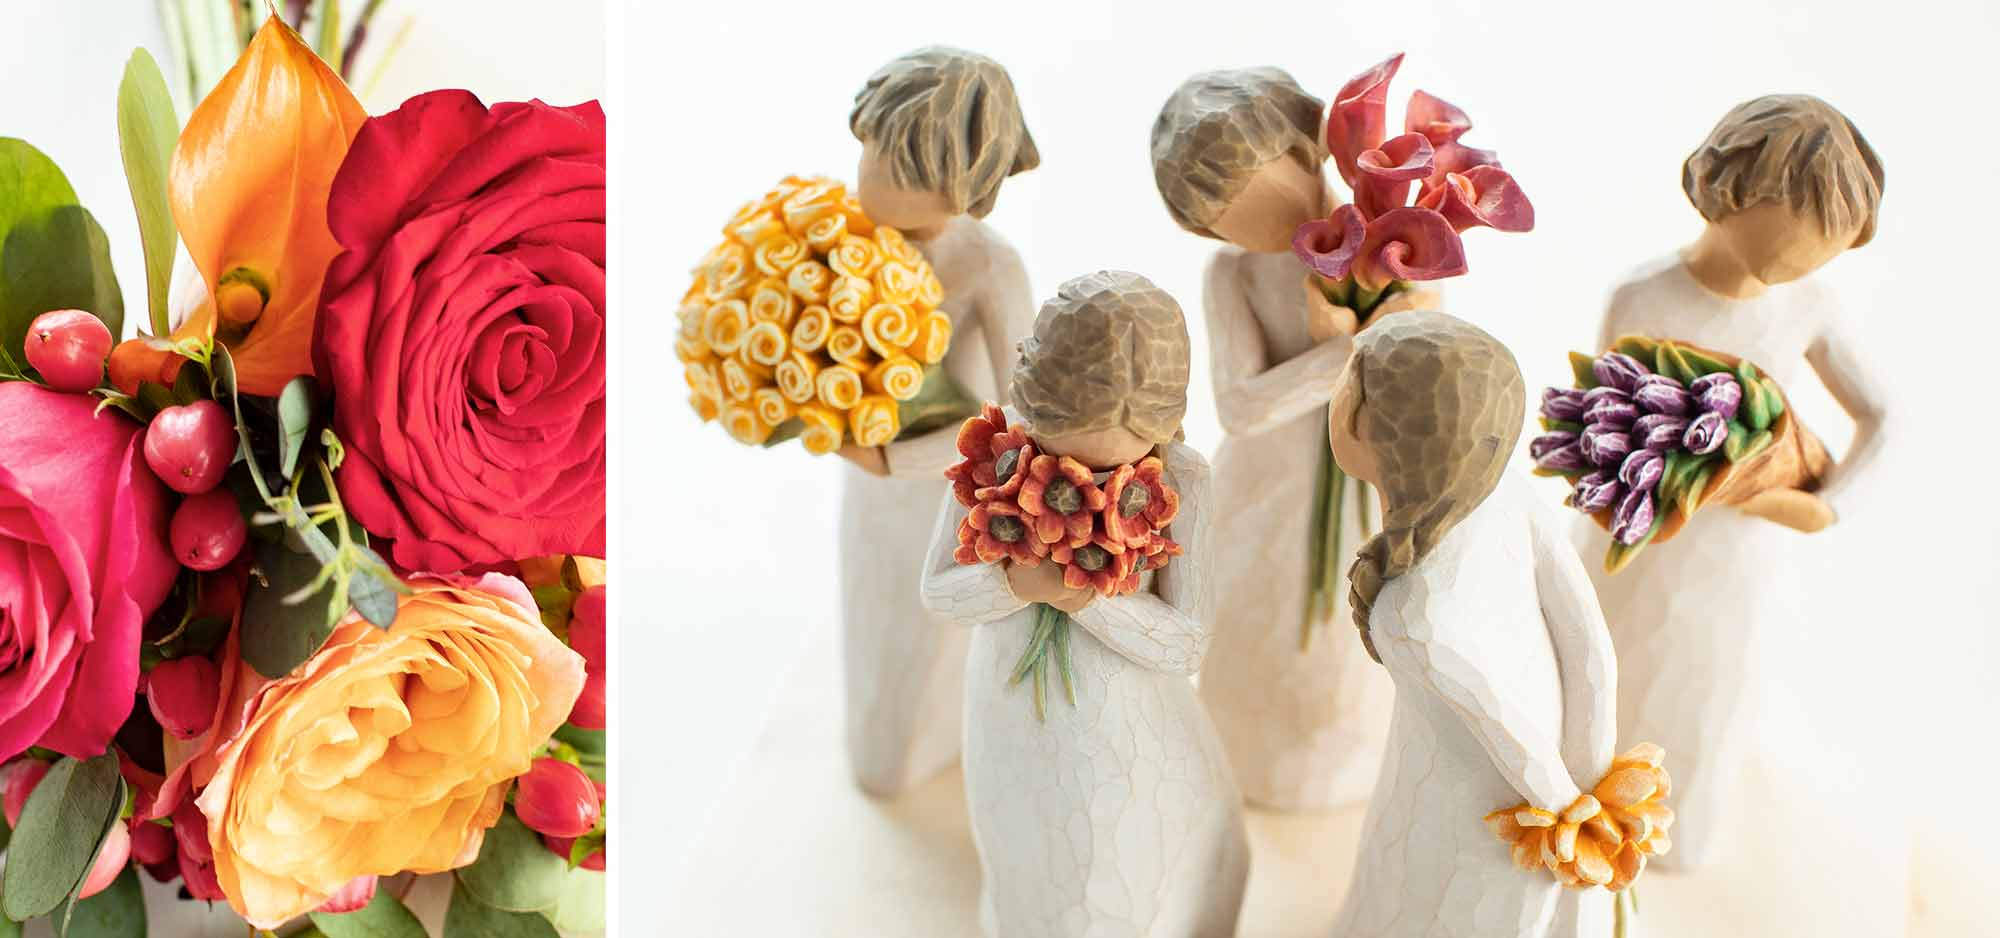 Bouquet of bright red and orange flowers. Five hand carved figurines holding bouquets of flowers.